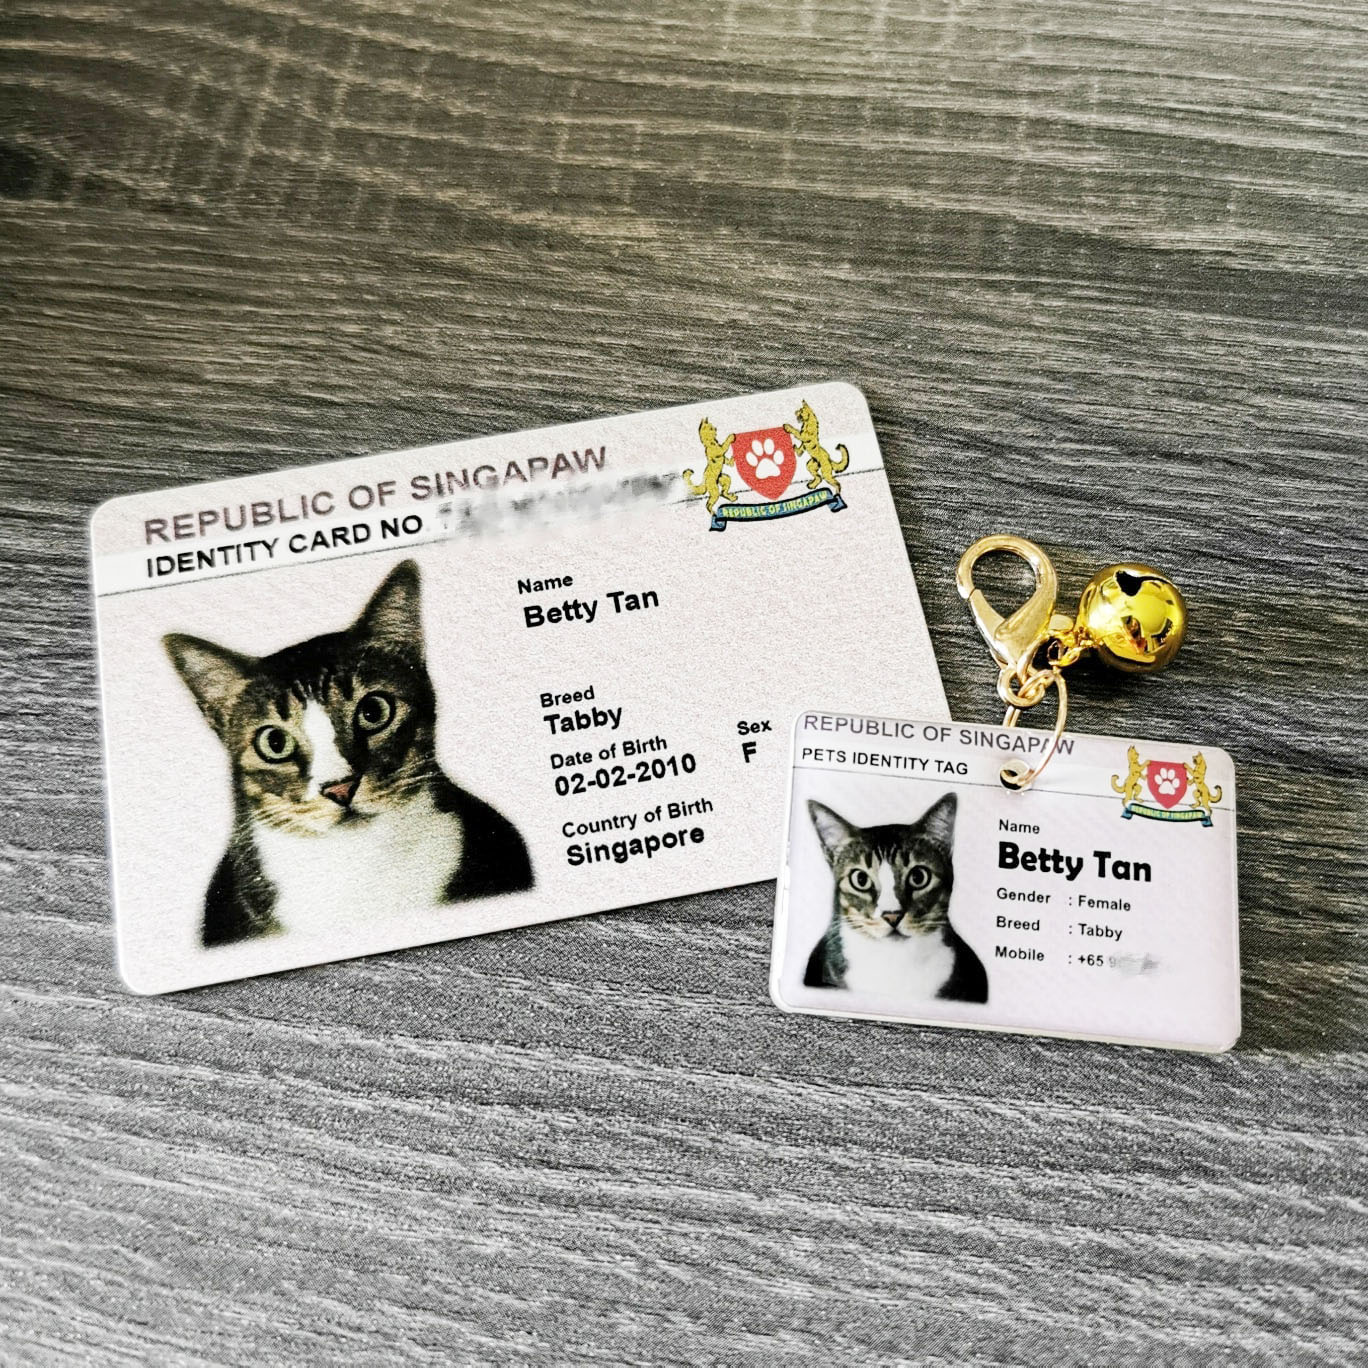 Plus Accessories - NRIC for Pets